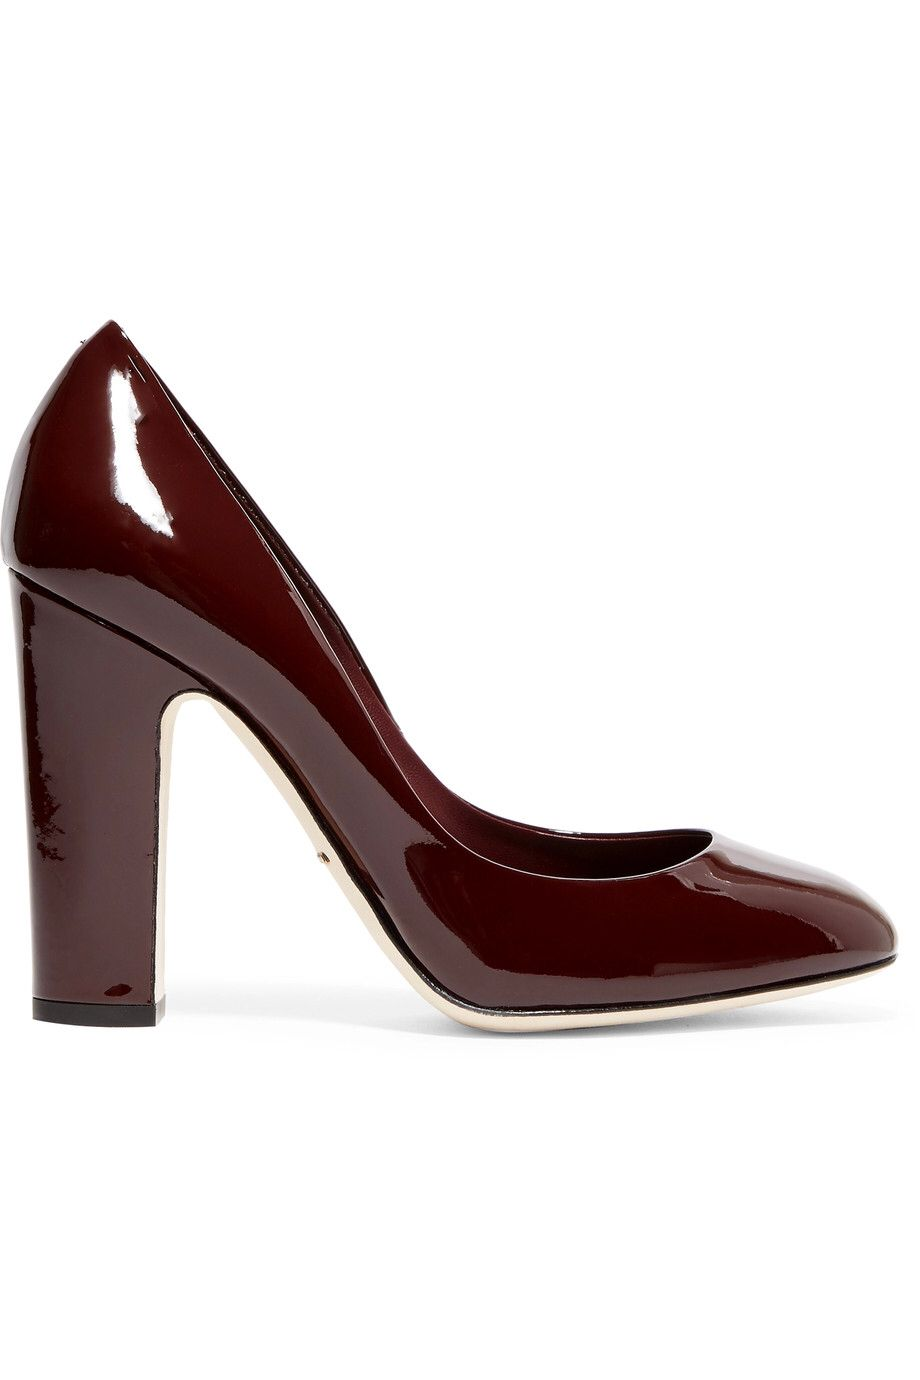 DOLCE & GABBANA PATENT-LEATHER PUMPS GBP199.38 http://www.theoutnet.com/product/972459